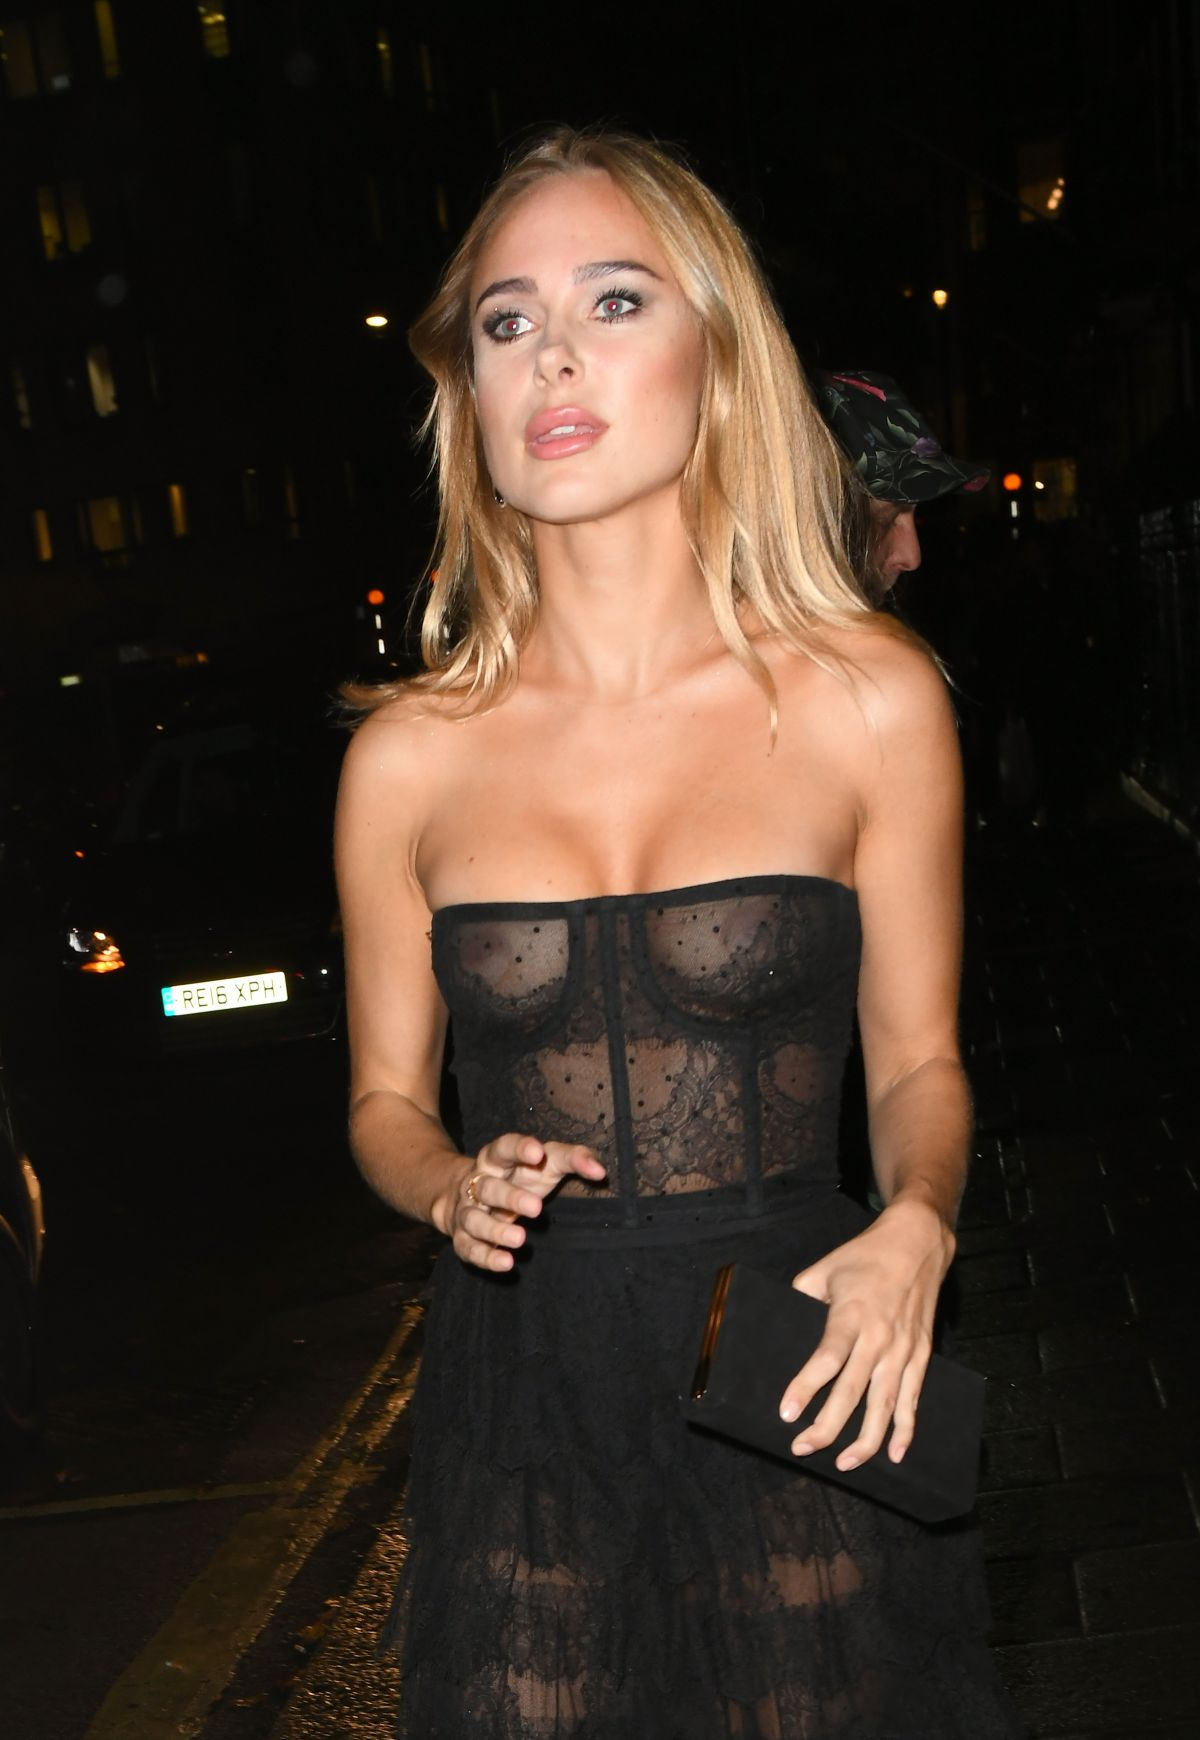 Kimberley Garner (BRALESS) sheer dress